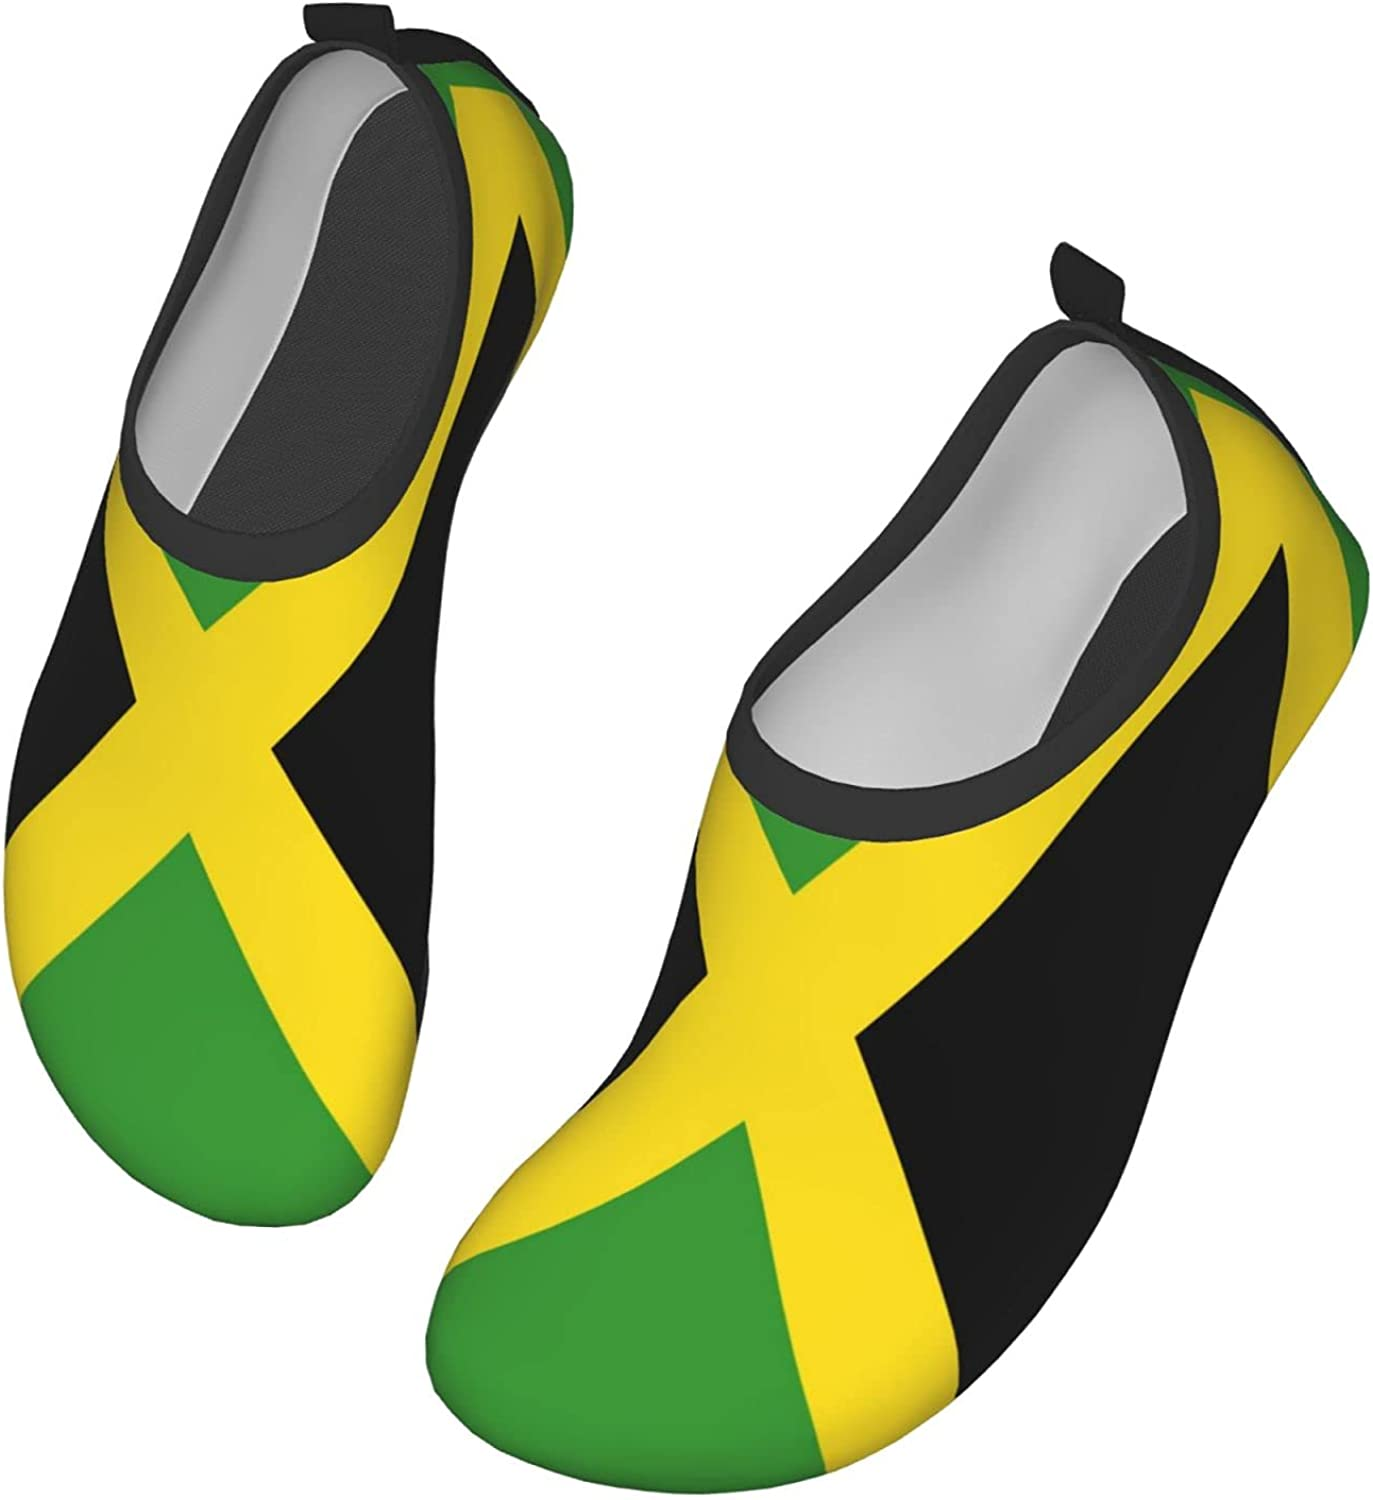 NCHOME Water Sport Shoes Simplify Flag Green and Black Barefoot Shoes Breathable Quick-Dry Water Athletic Shoes Comfortable Slip-On Aqua Socks for Man Woman Kids